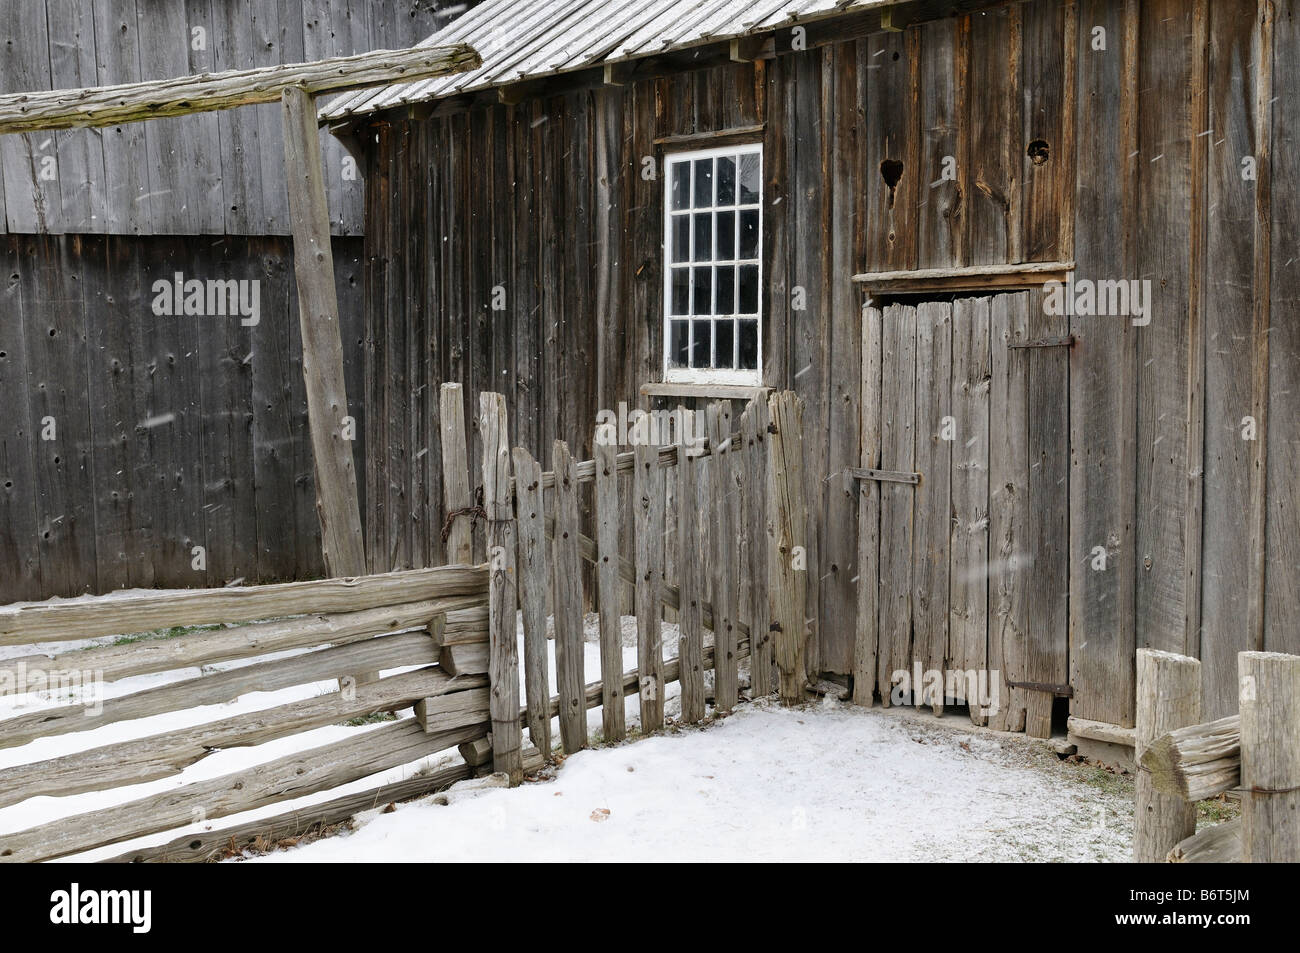 Outside of Edgeley slaughter house 1860 in winter snow at Black Creek Pioneer Village Toronto - Stock Image